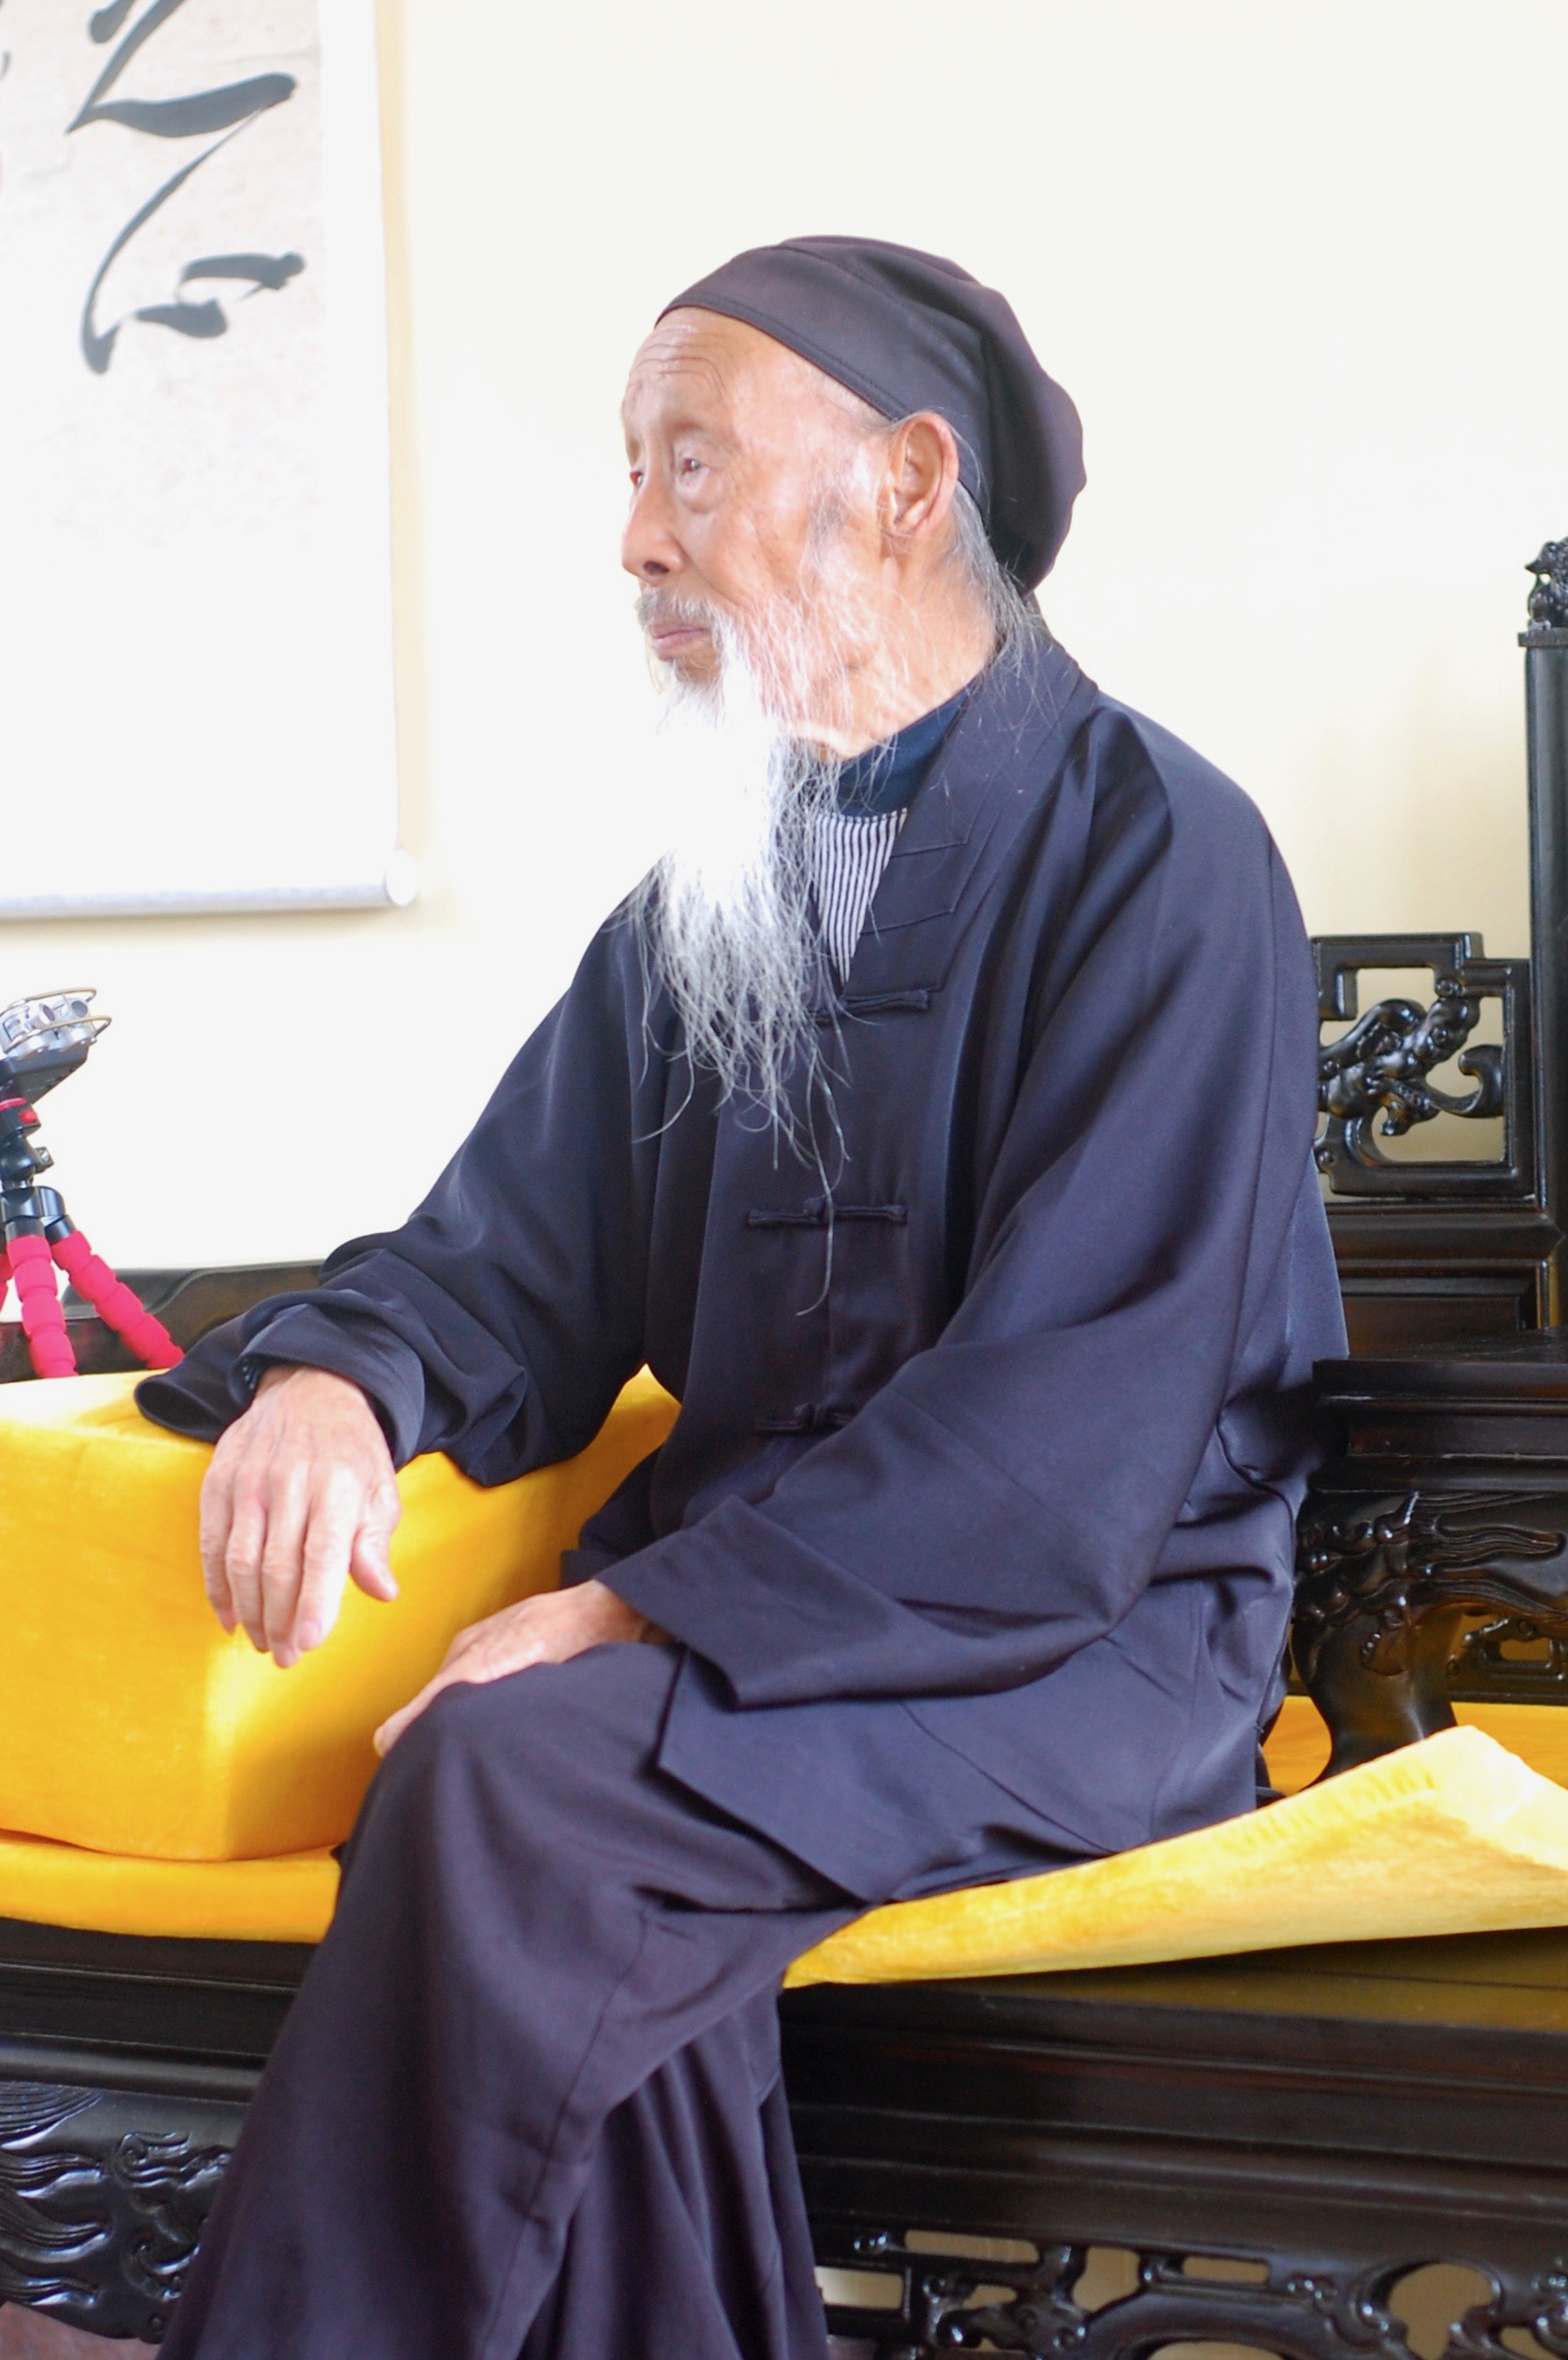 Master Zhang Zhishun of the Complete Reality School, pictured sometime just shy of his 100th birthday (Hainan, China)